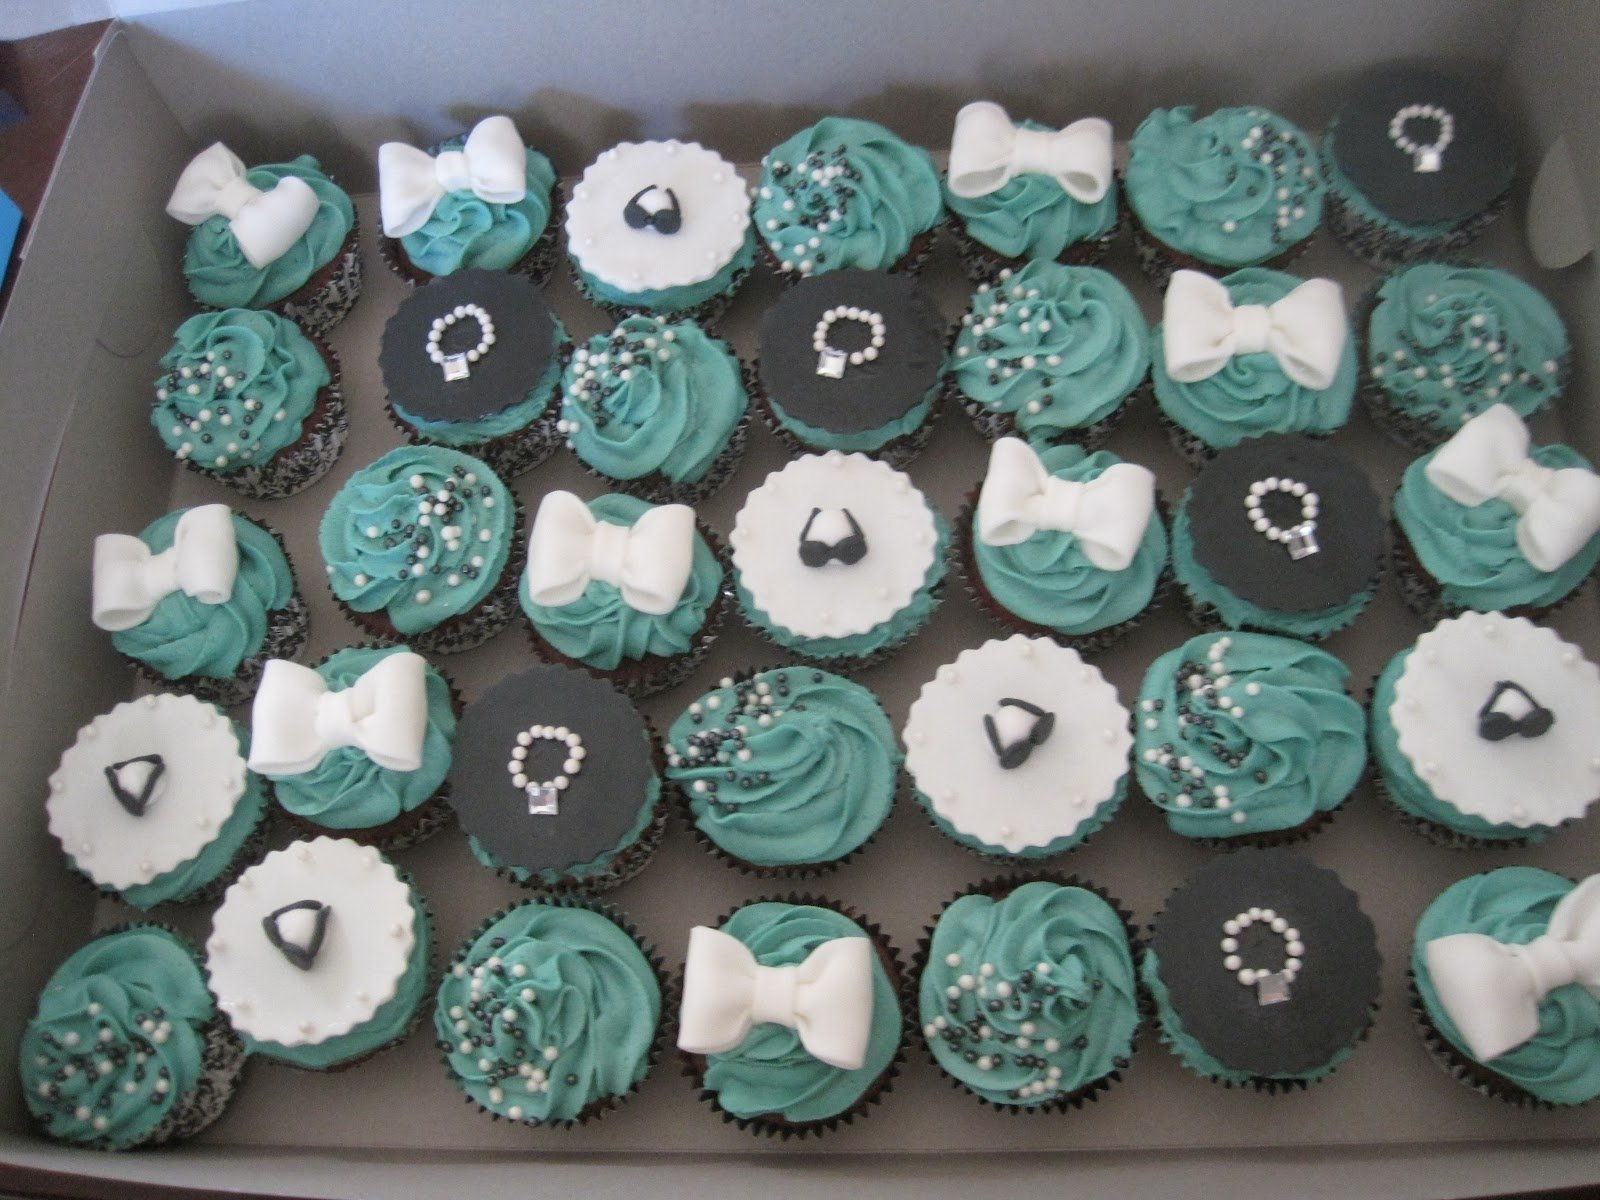 10 Beautiful Cupcake Ideas For Bridal Shower decorating ideas for bridal shower cupcakes unique breakfast at 2020